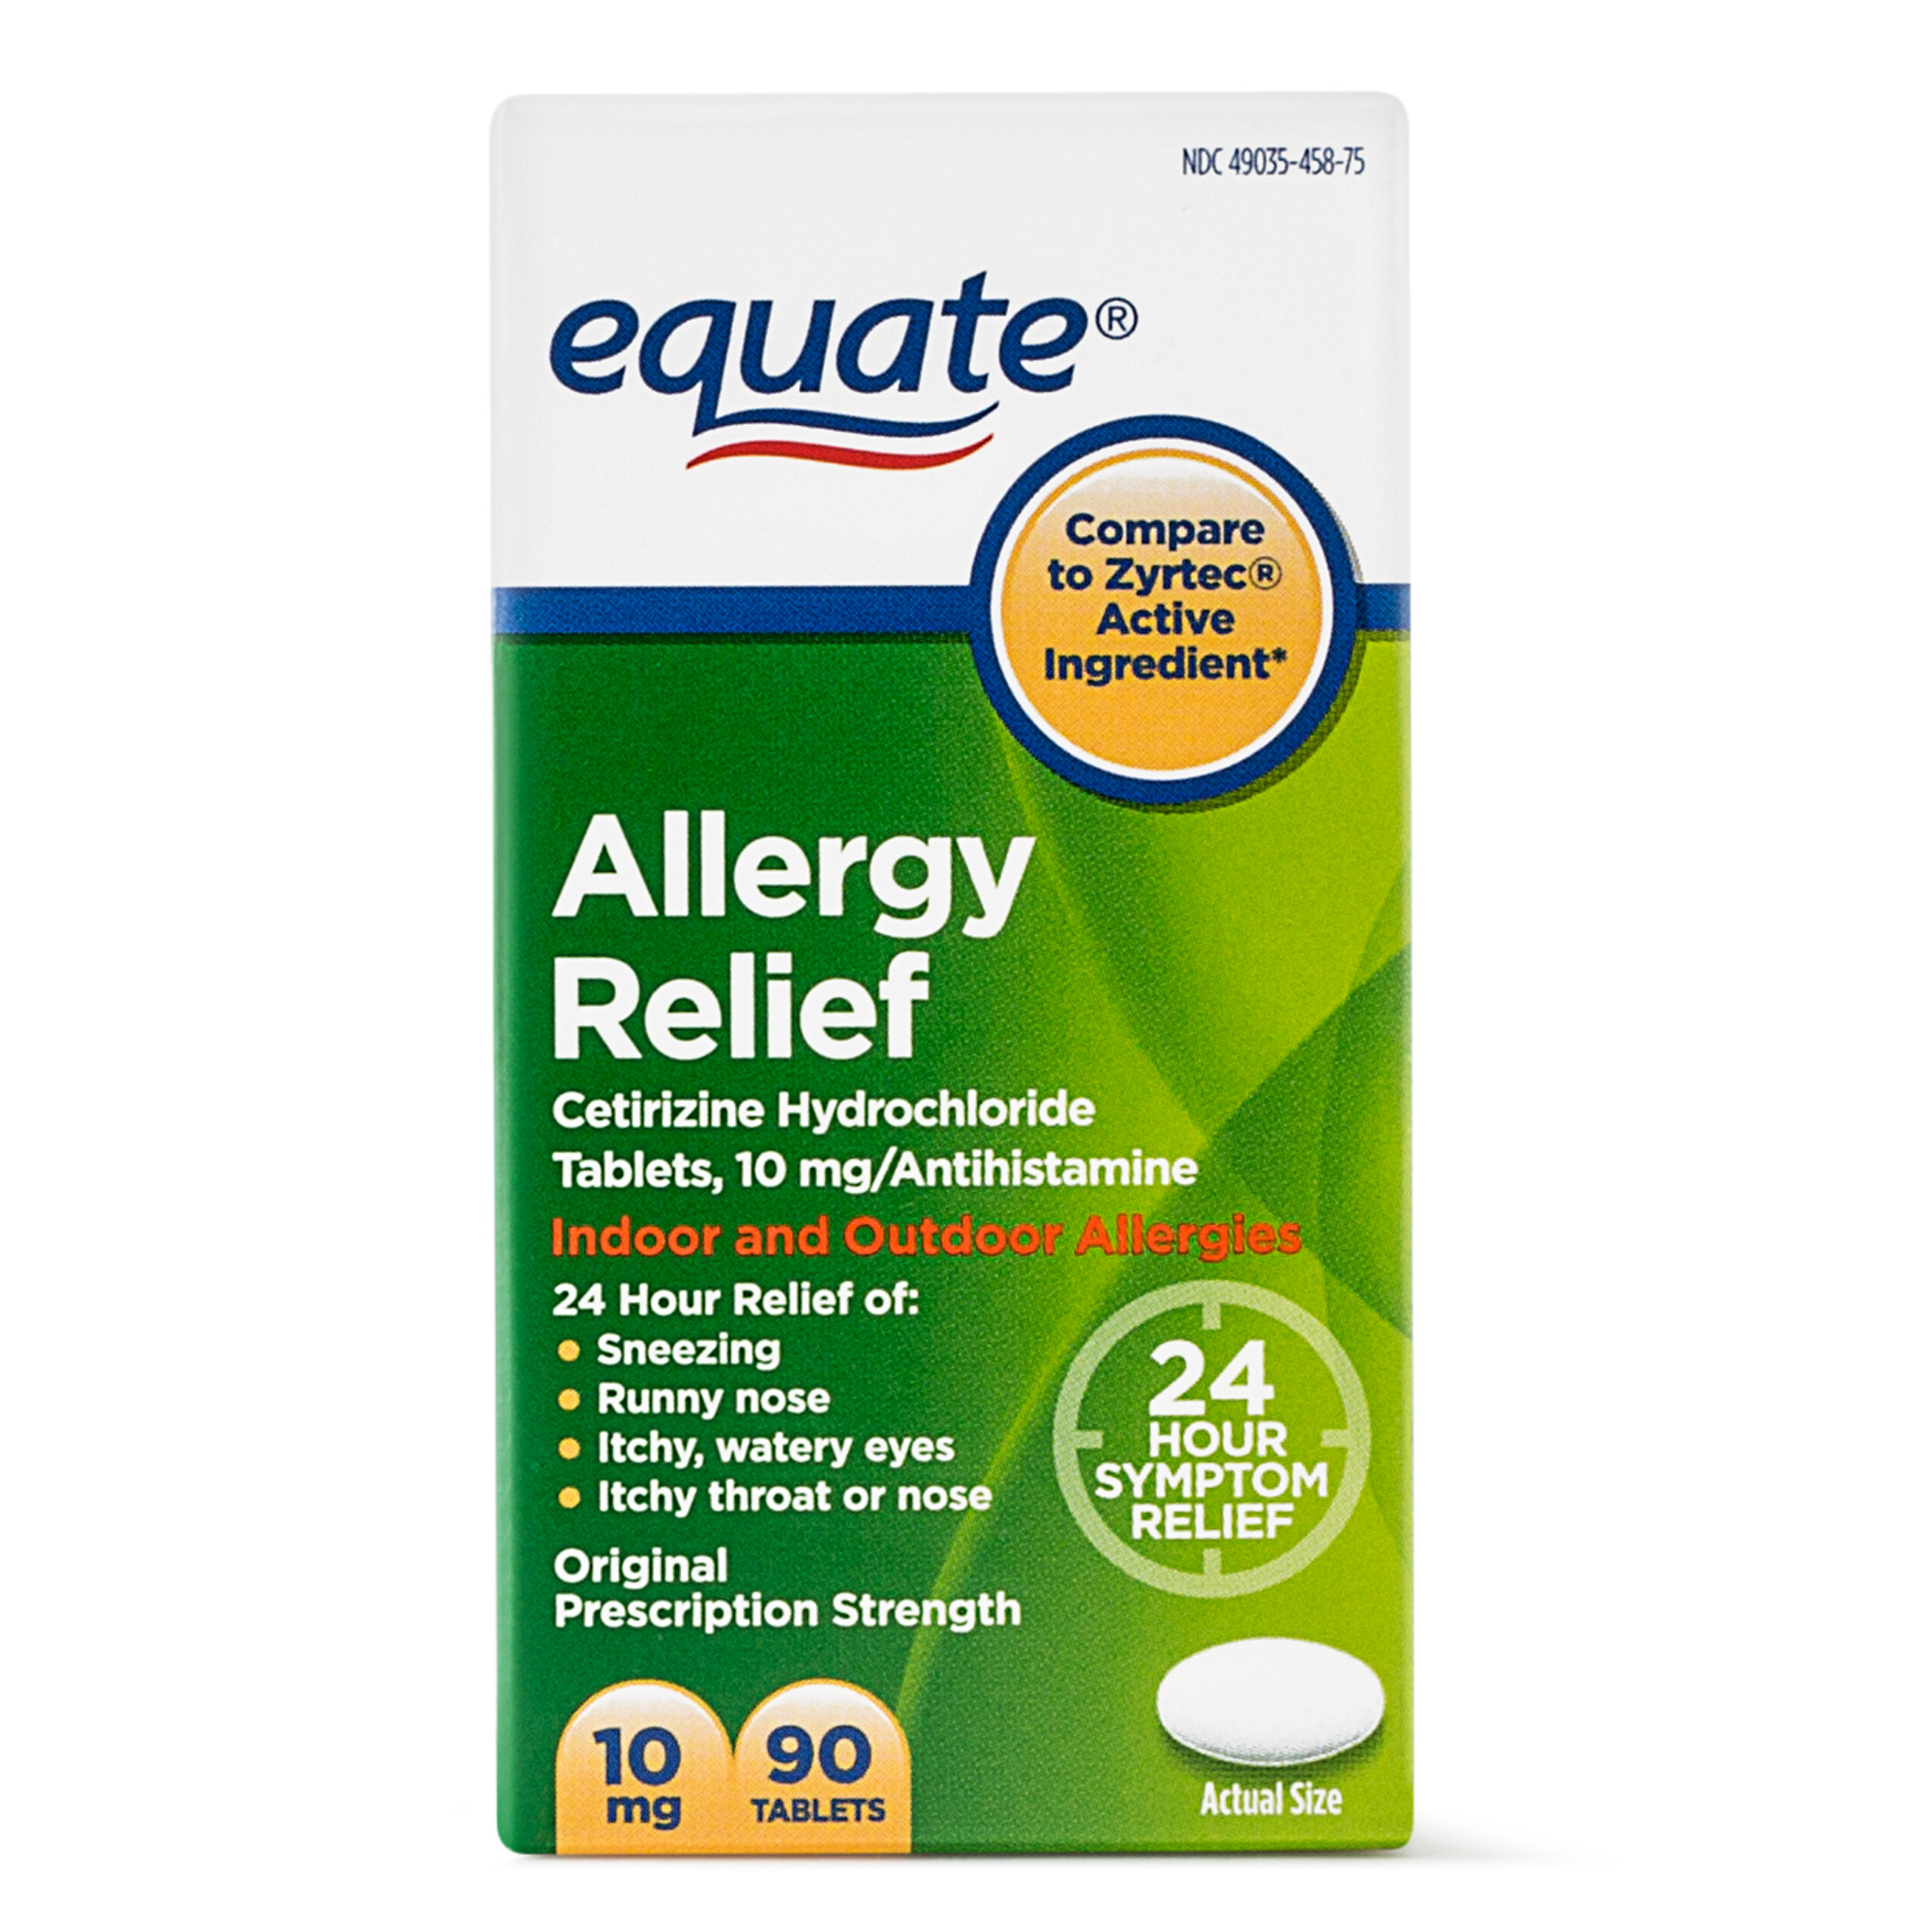 Equate Allergy Relief Cetirizine Antihistamine Tablets, 10 mg, 90 Ct